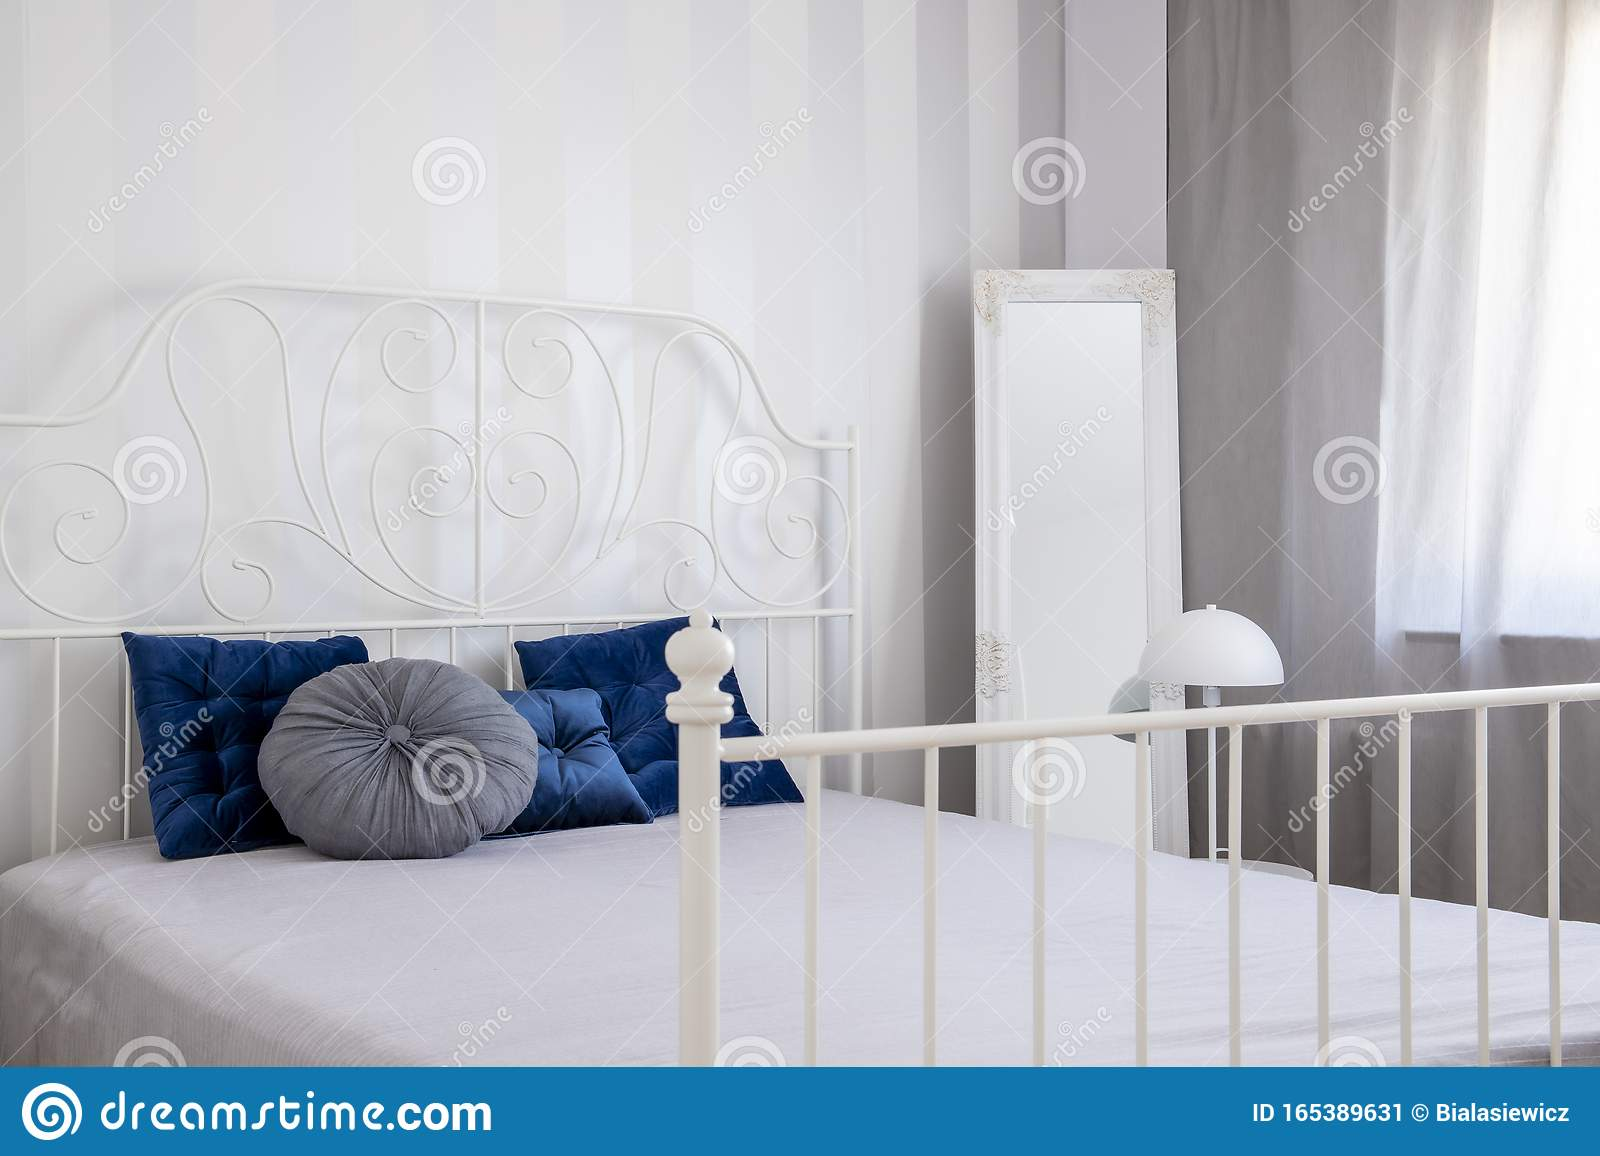 Pillows On White Metal King Size Bed In Small Bedroom Interior Stock Image Image Of King Condo 165389631